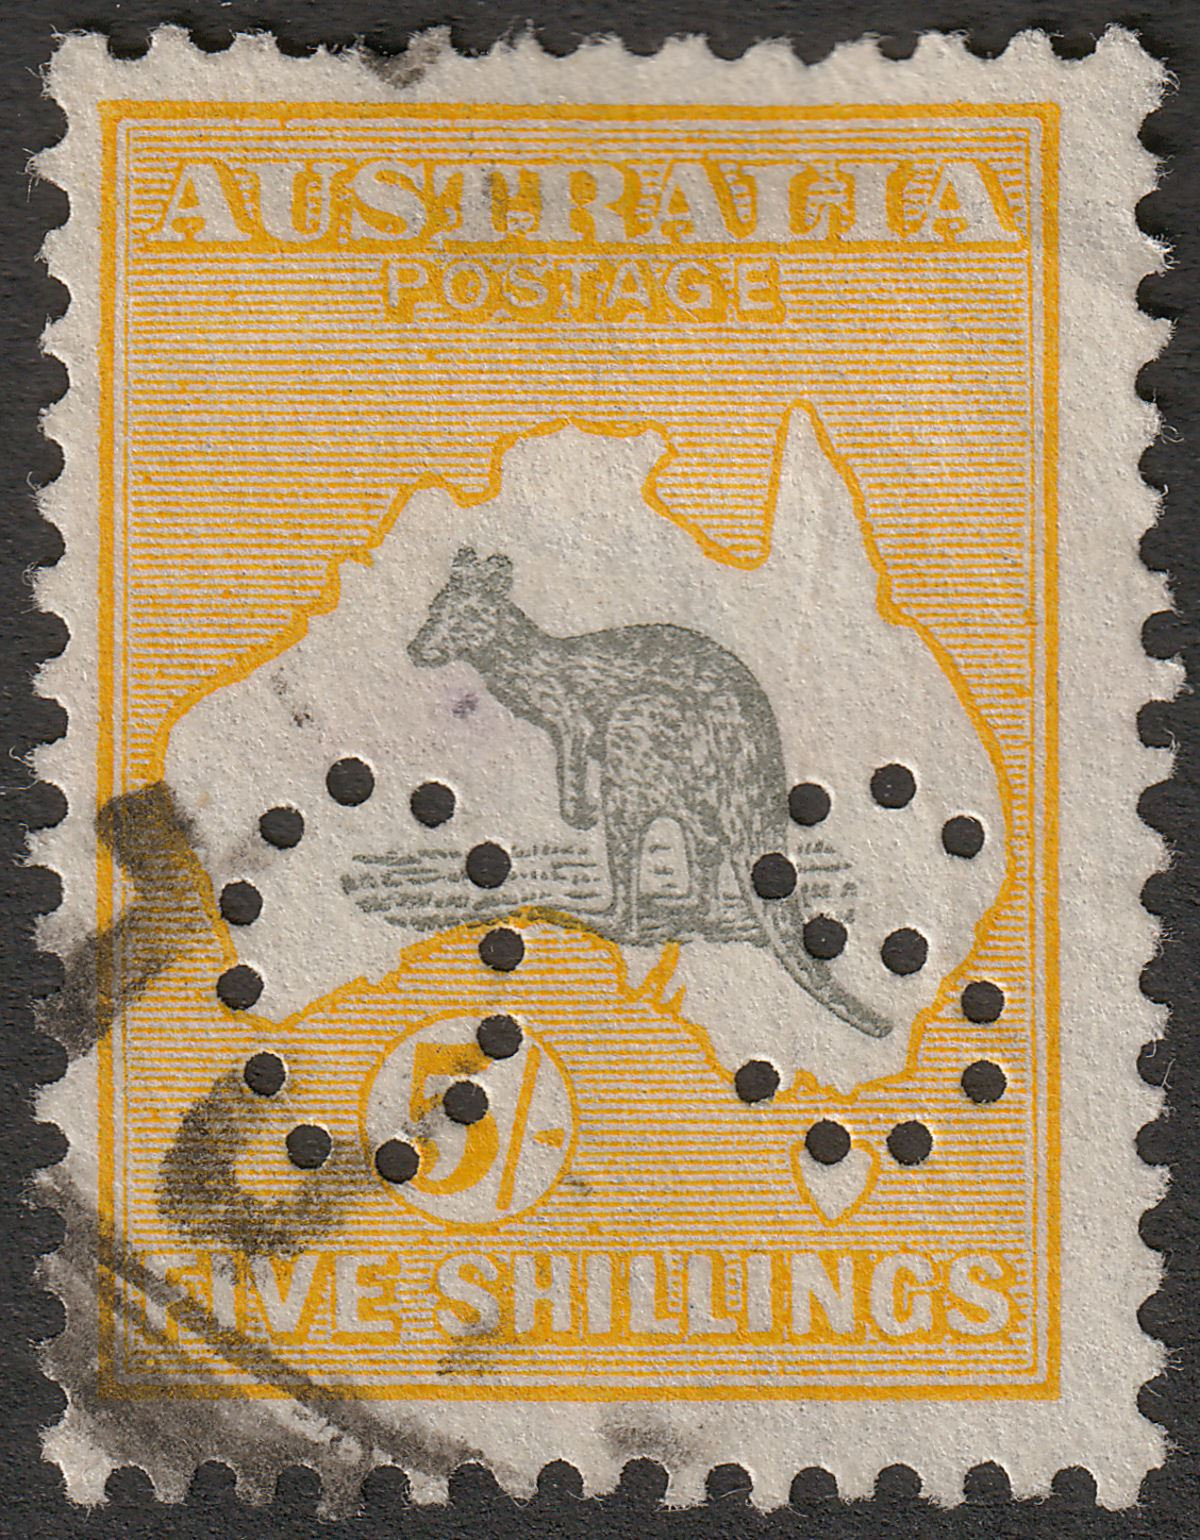 Australia 1918 KGV Roo 5sh Grey and Yellow perf OS Used SG O50 cat £70